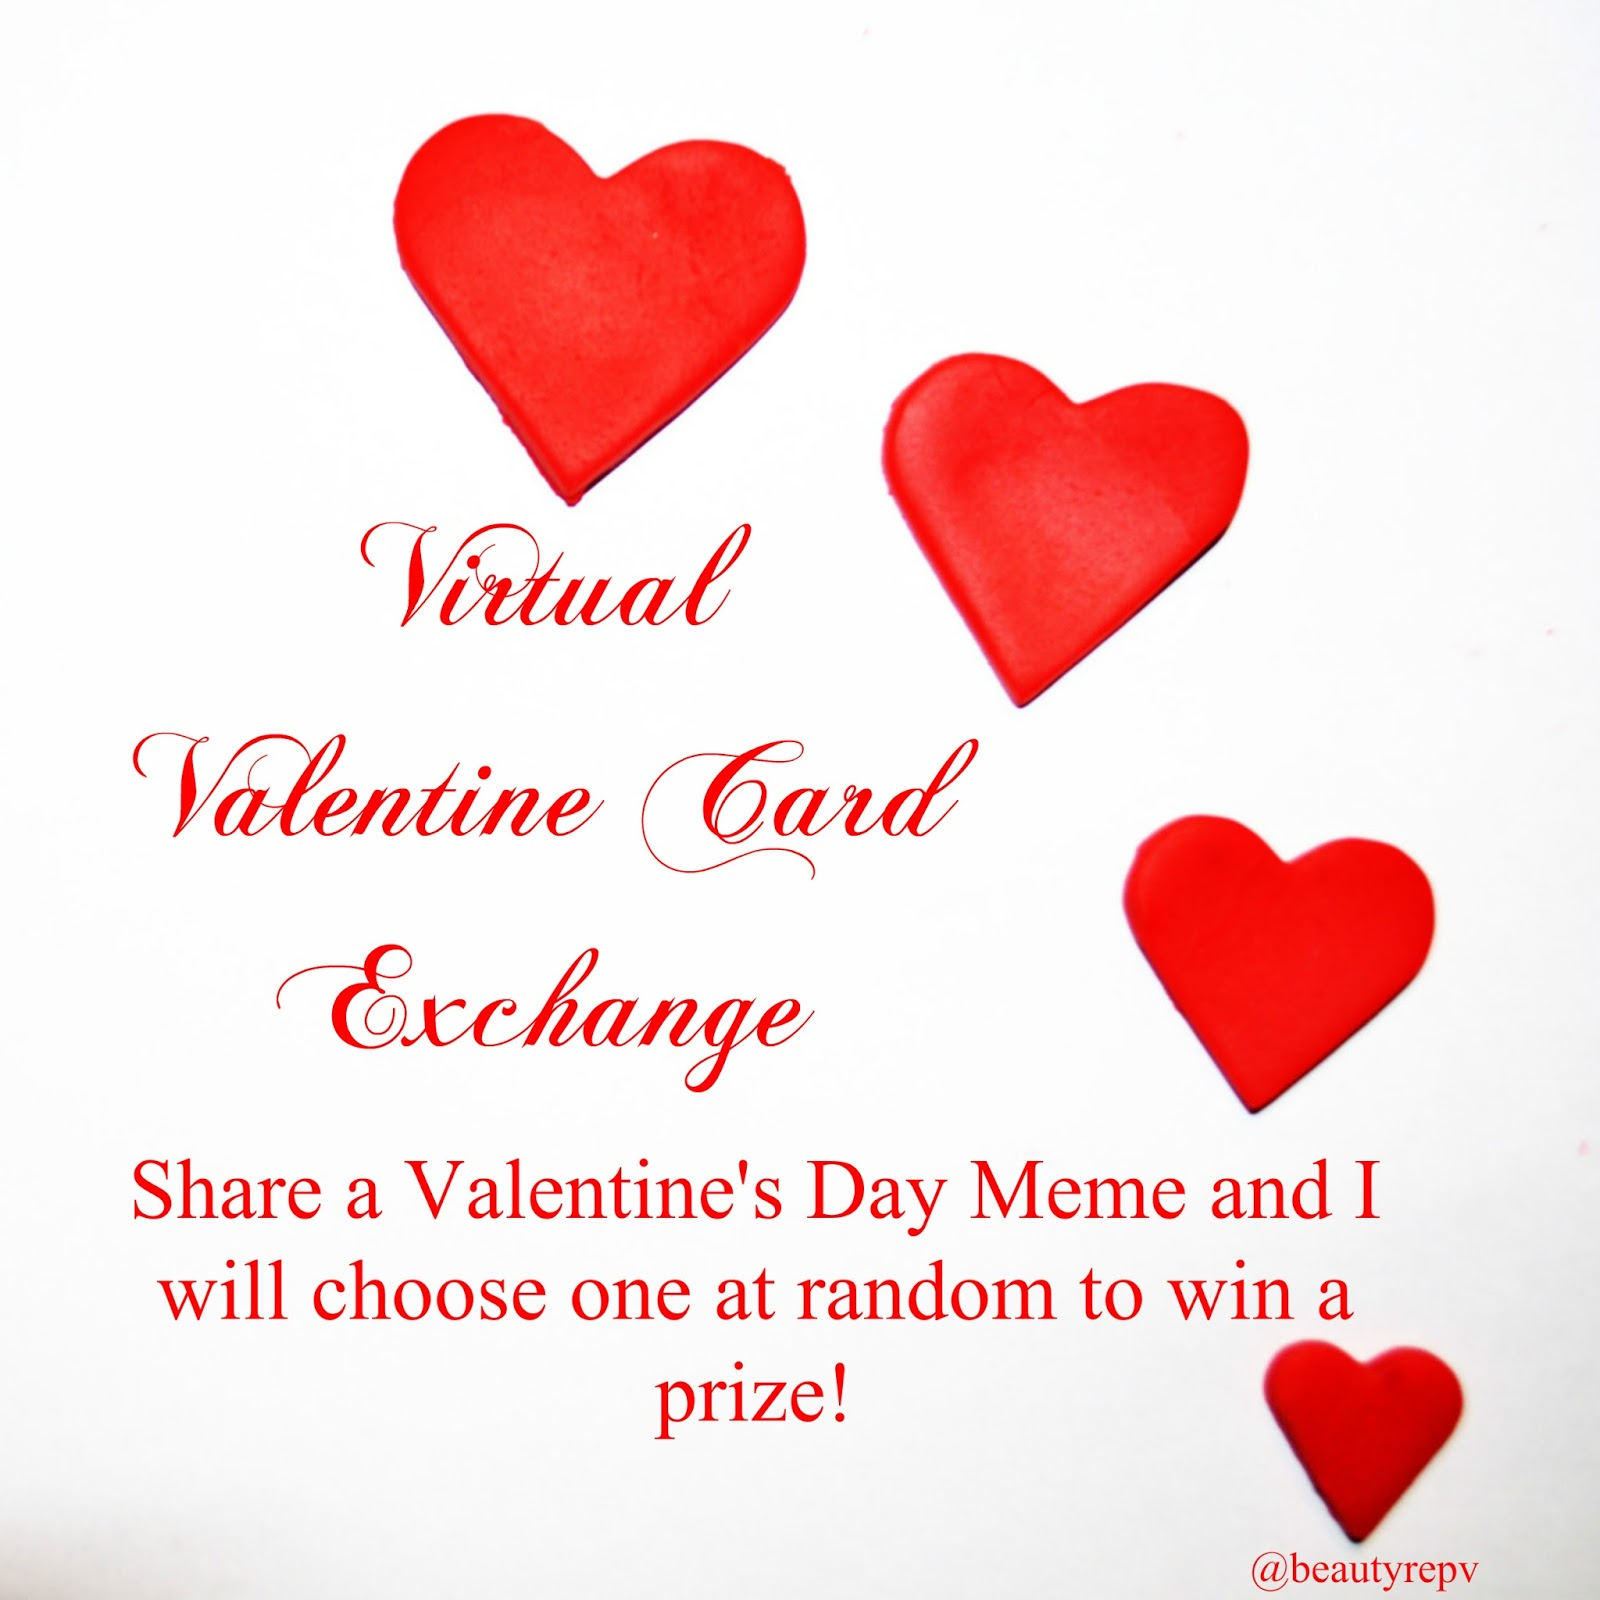 Beautyrepv Tip Tuesday Enter The Virtual Valentine Card Exchange